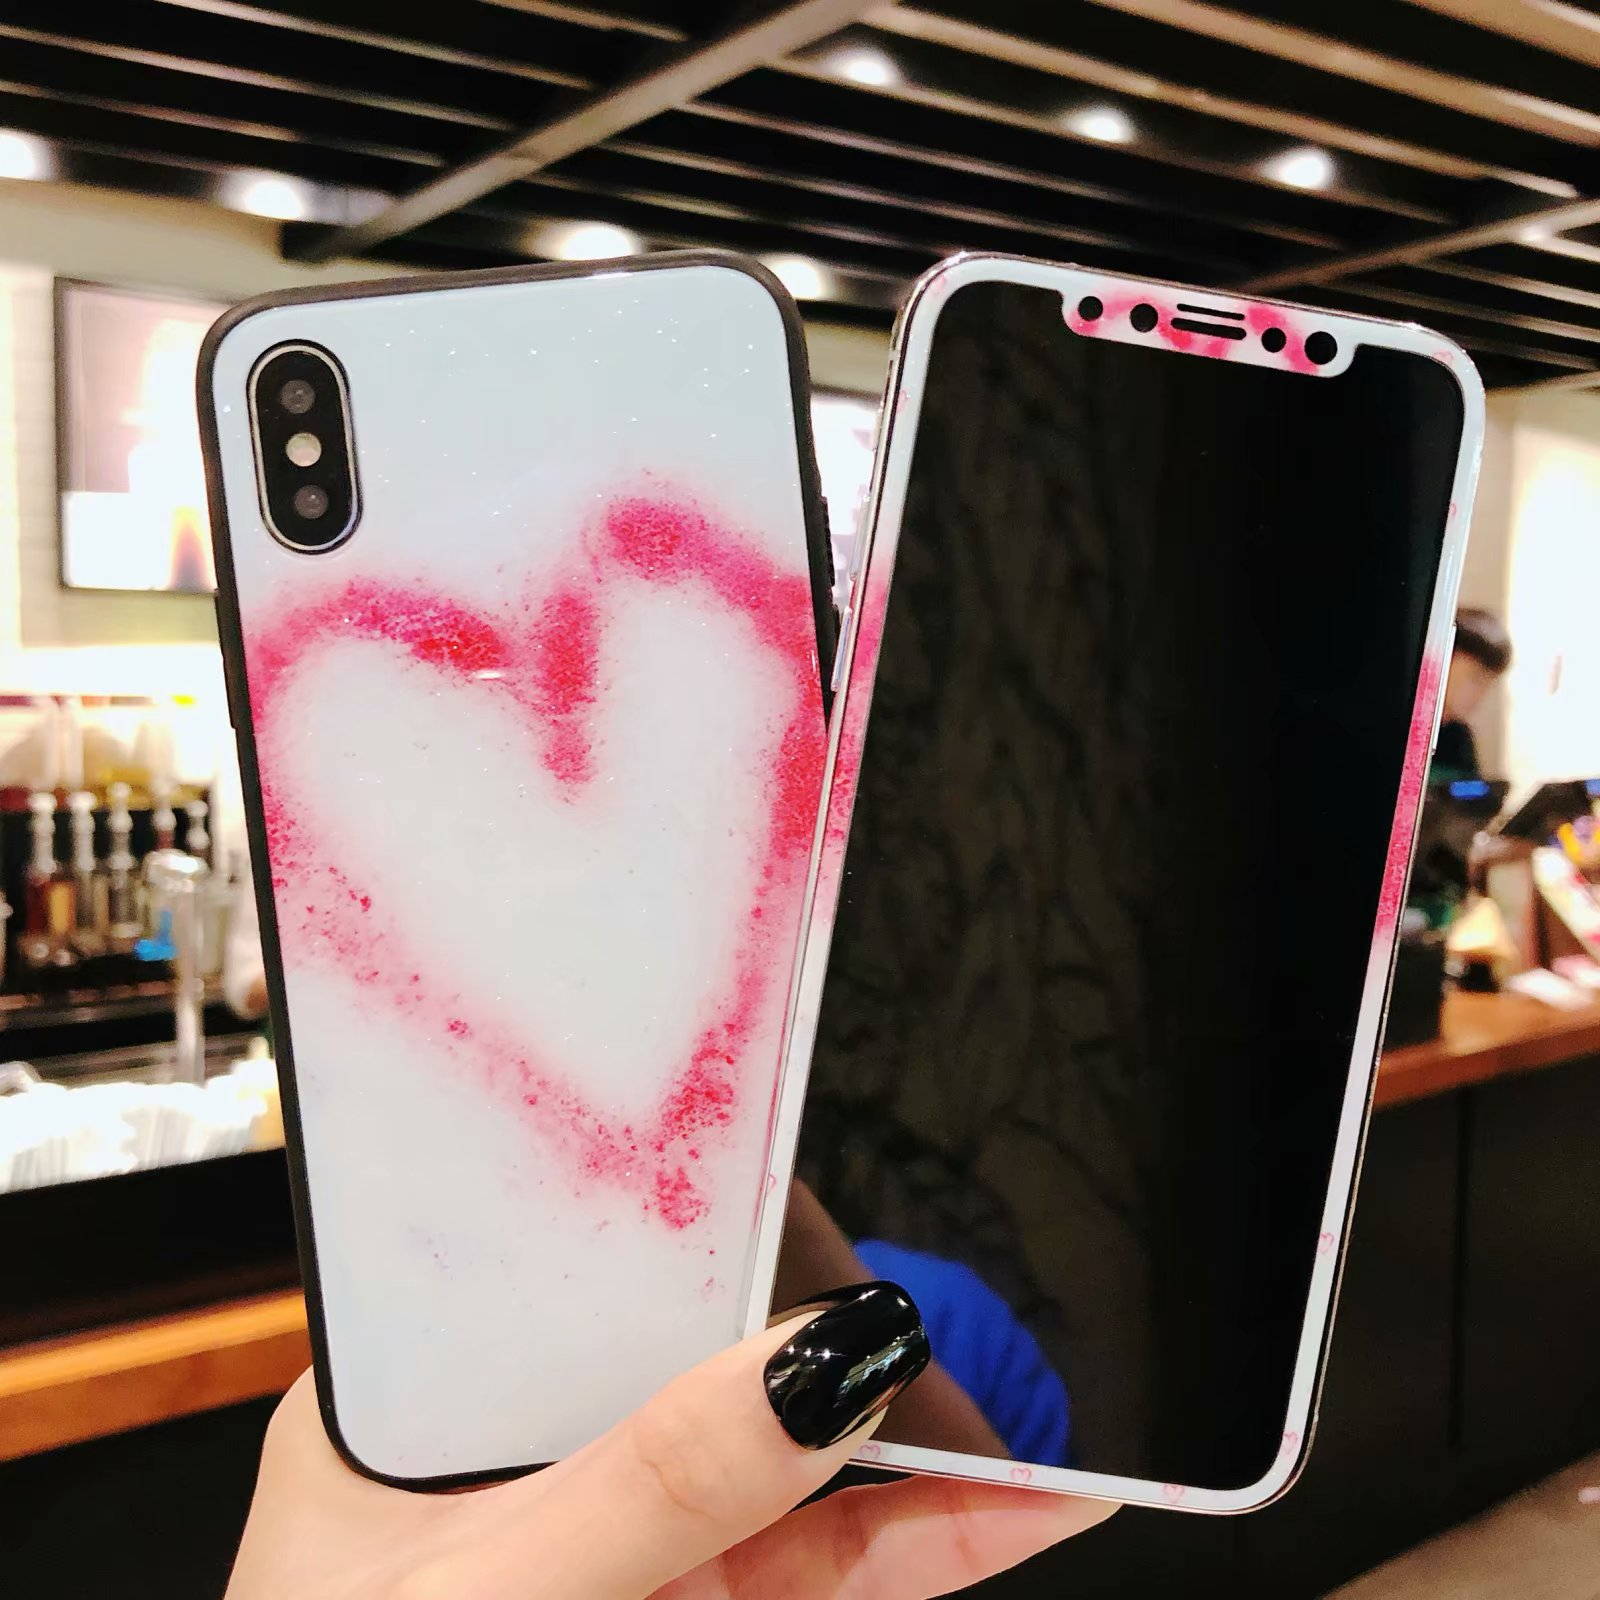 Bling love glass shell For iPhone X 8 7 6 6s plus case & front tempered glass film Cover for iPhone 8 7 plus red heart stickers